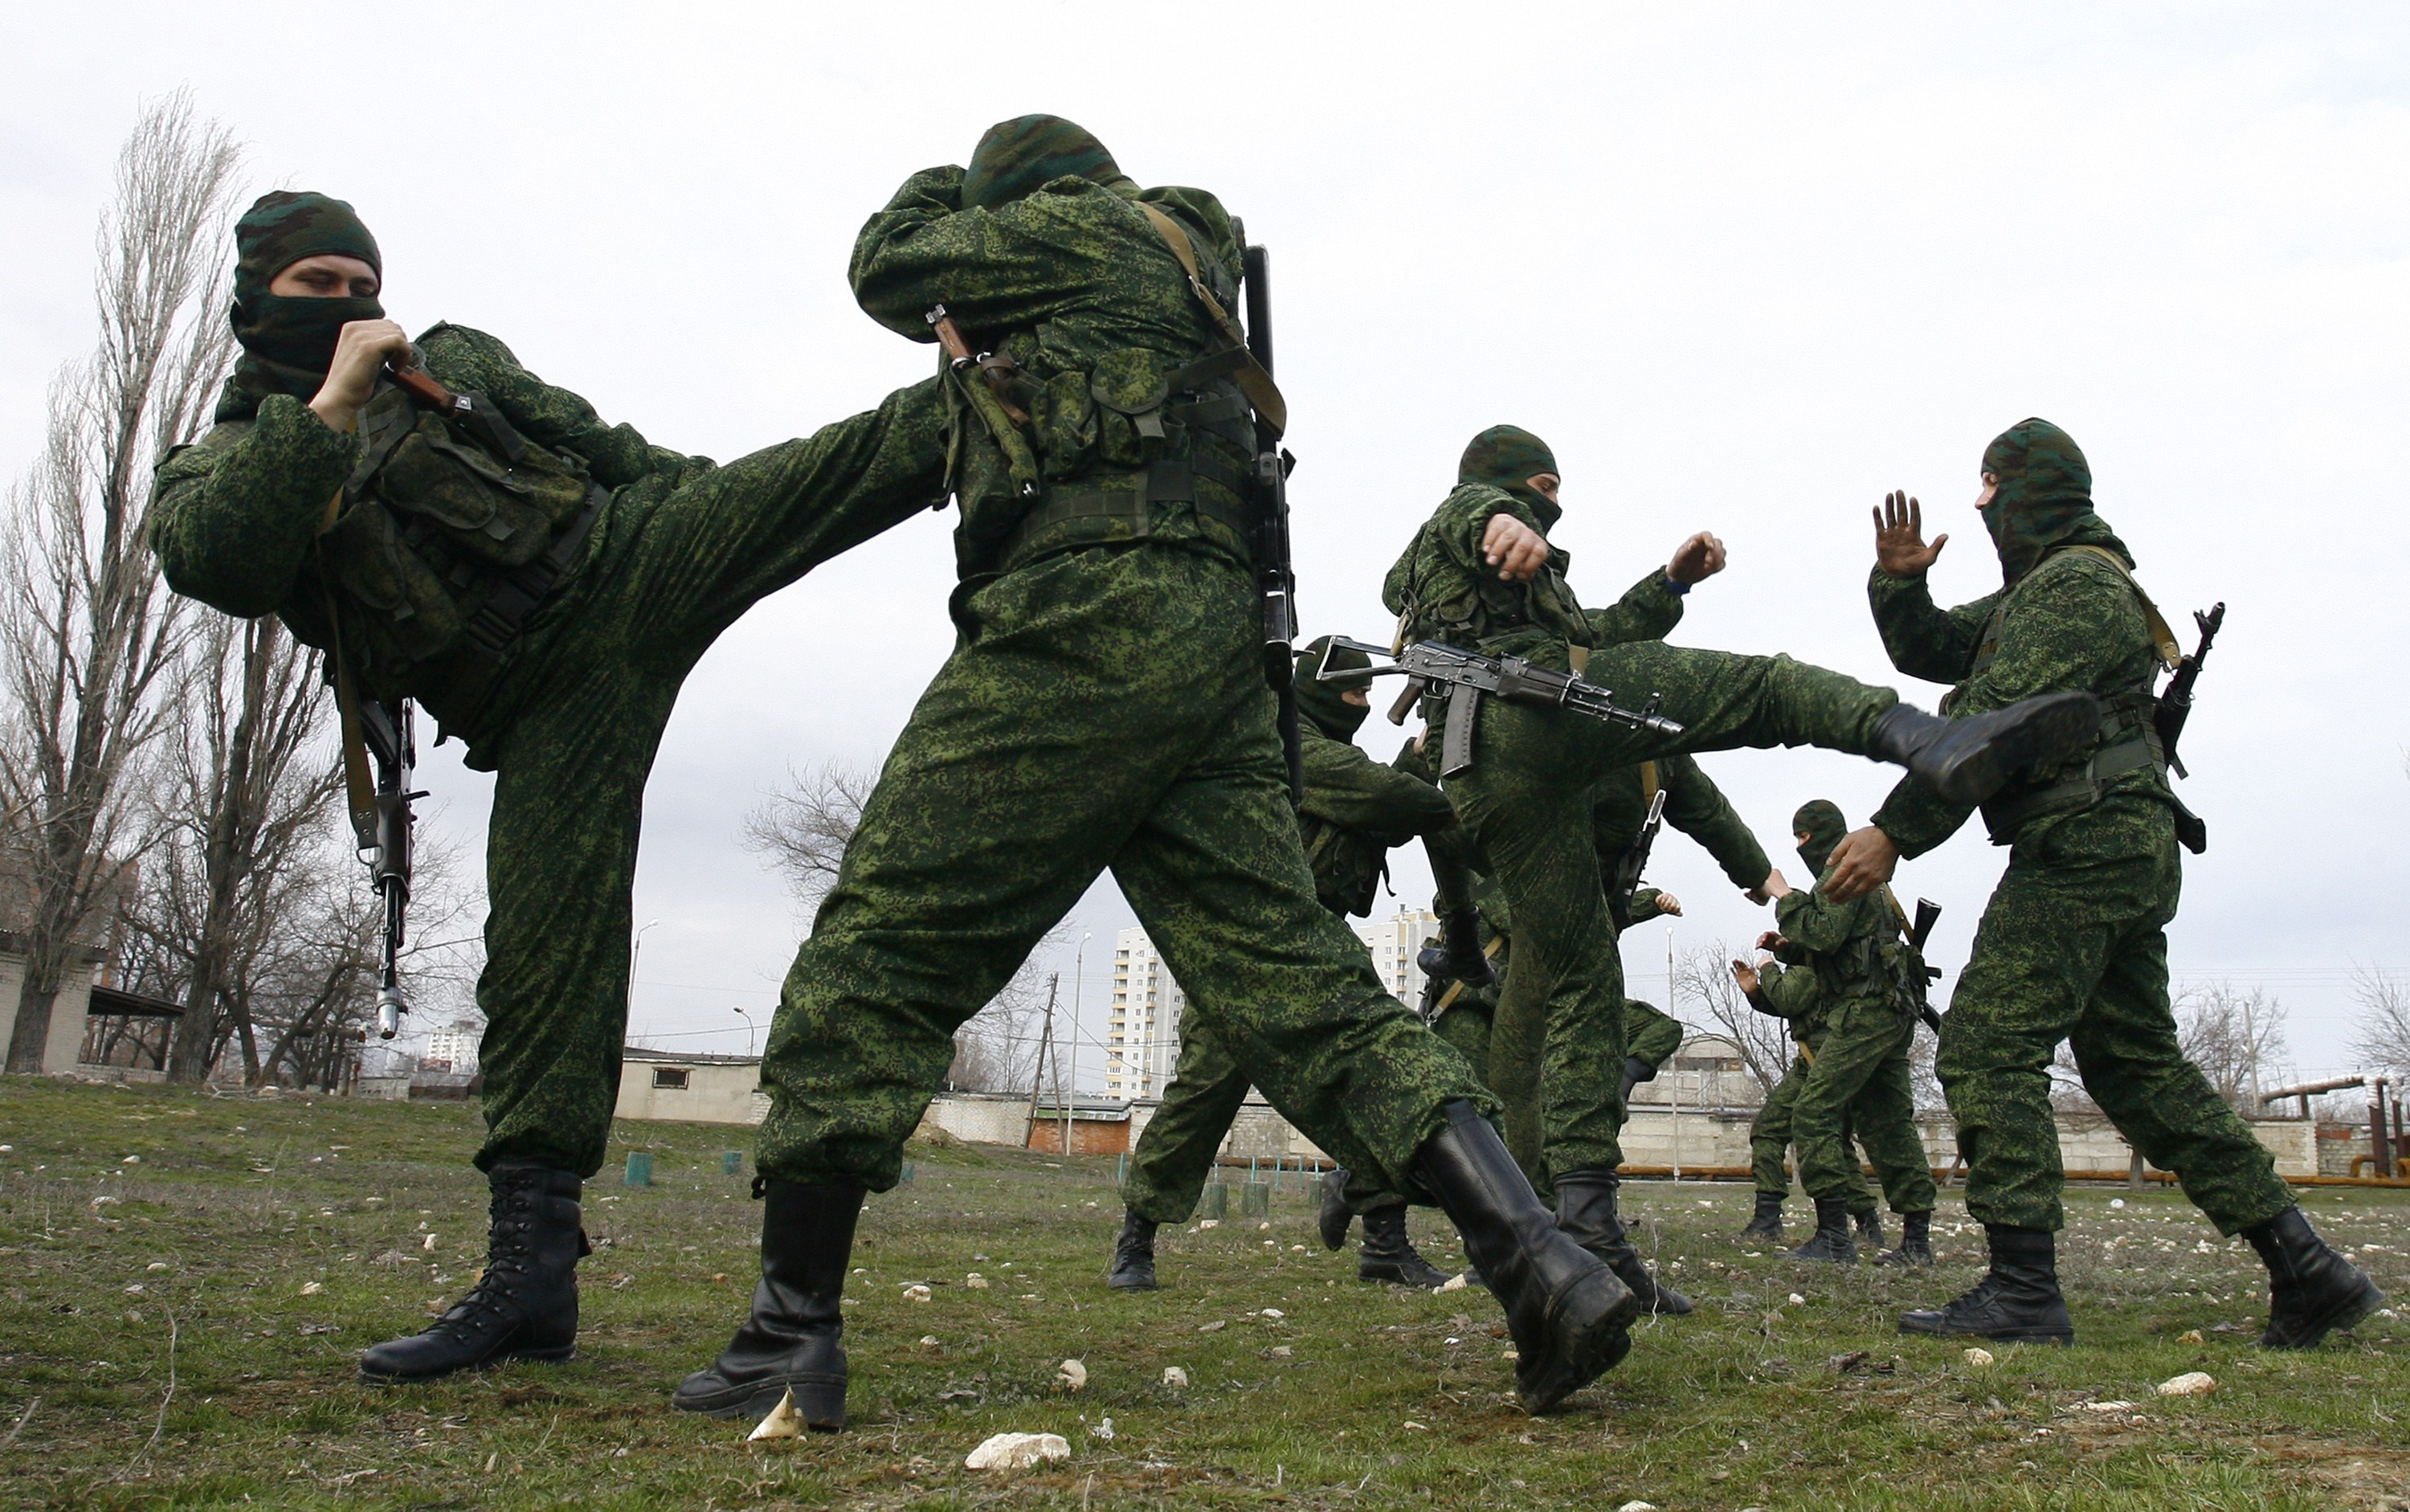 Reported Russian Military Video Tells Recruits Pain